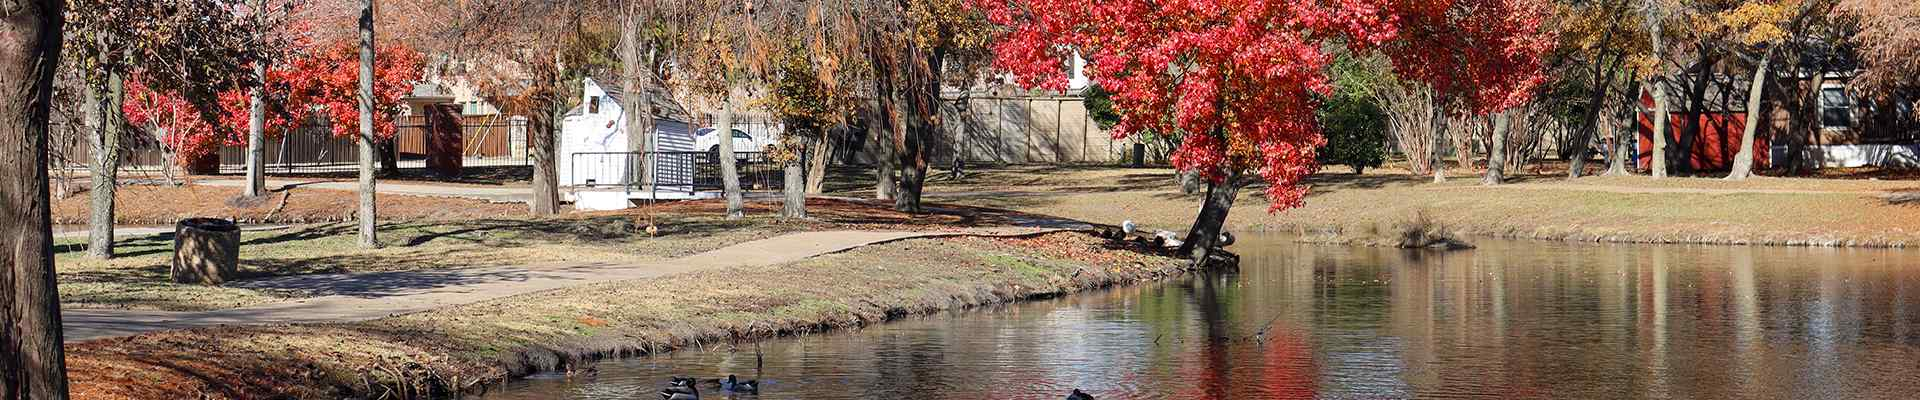 a pond and trees with fall foliage in parker texas